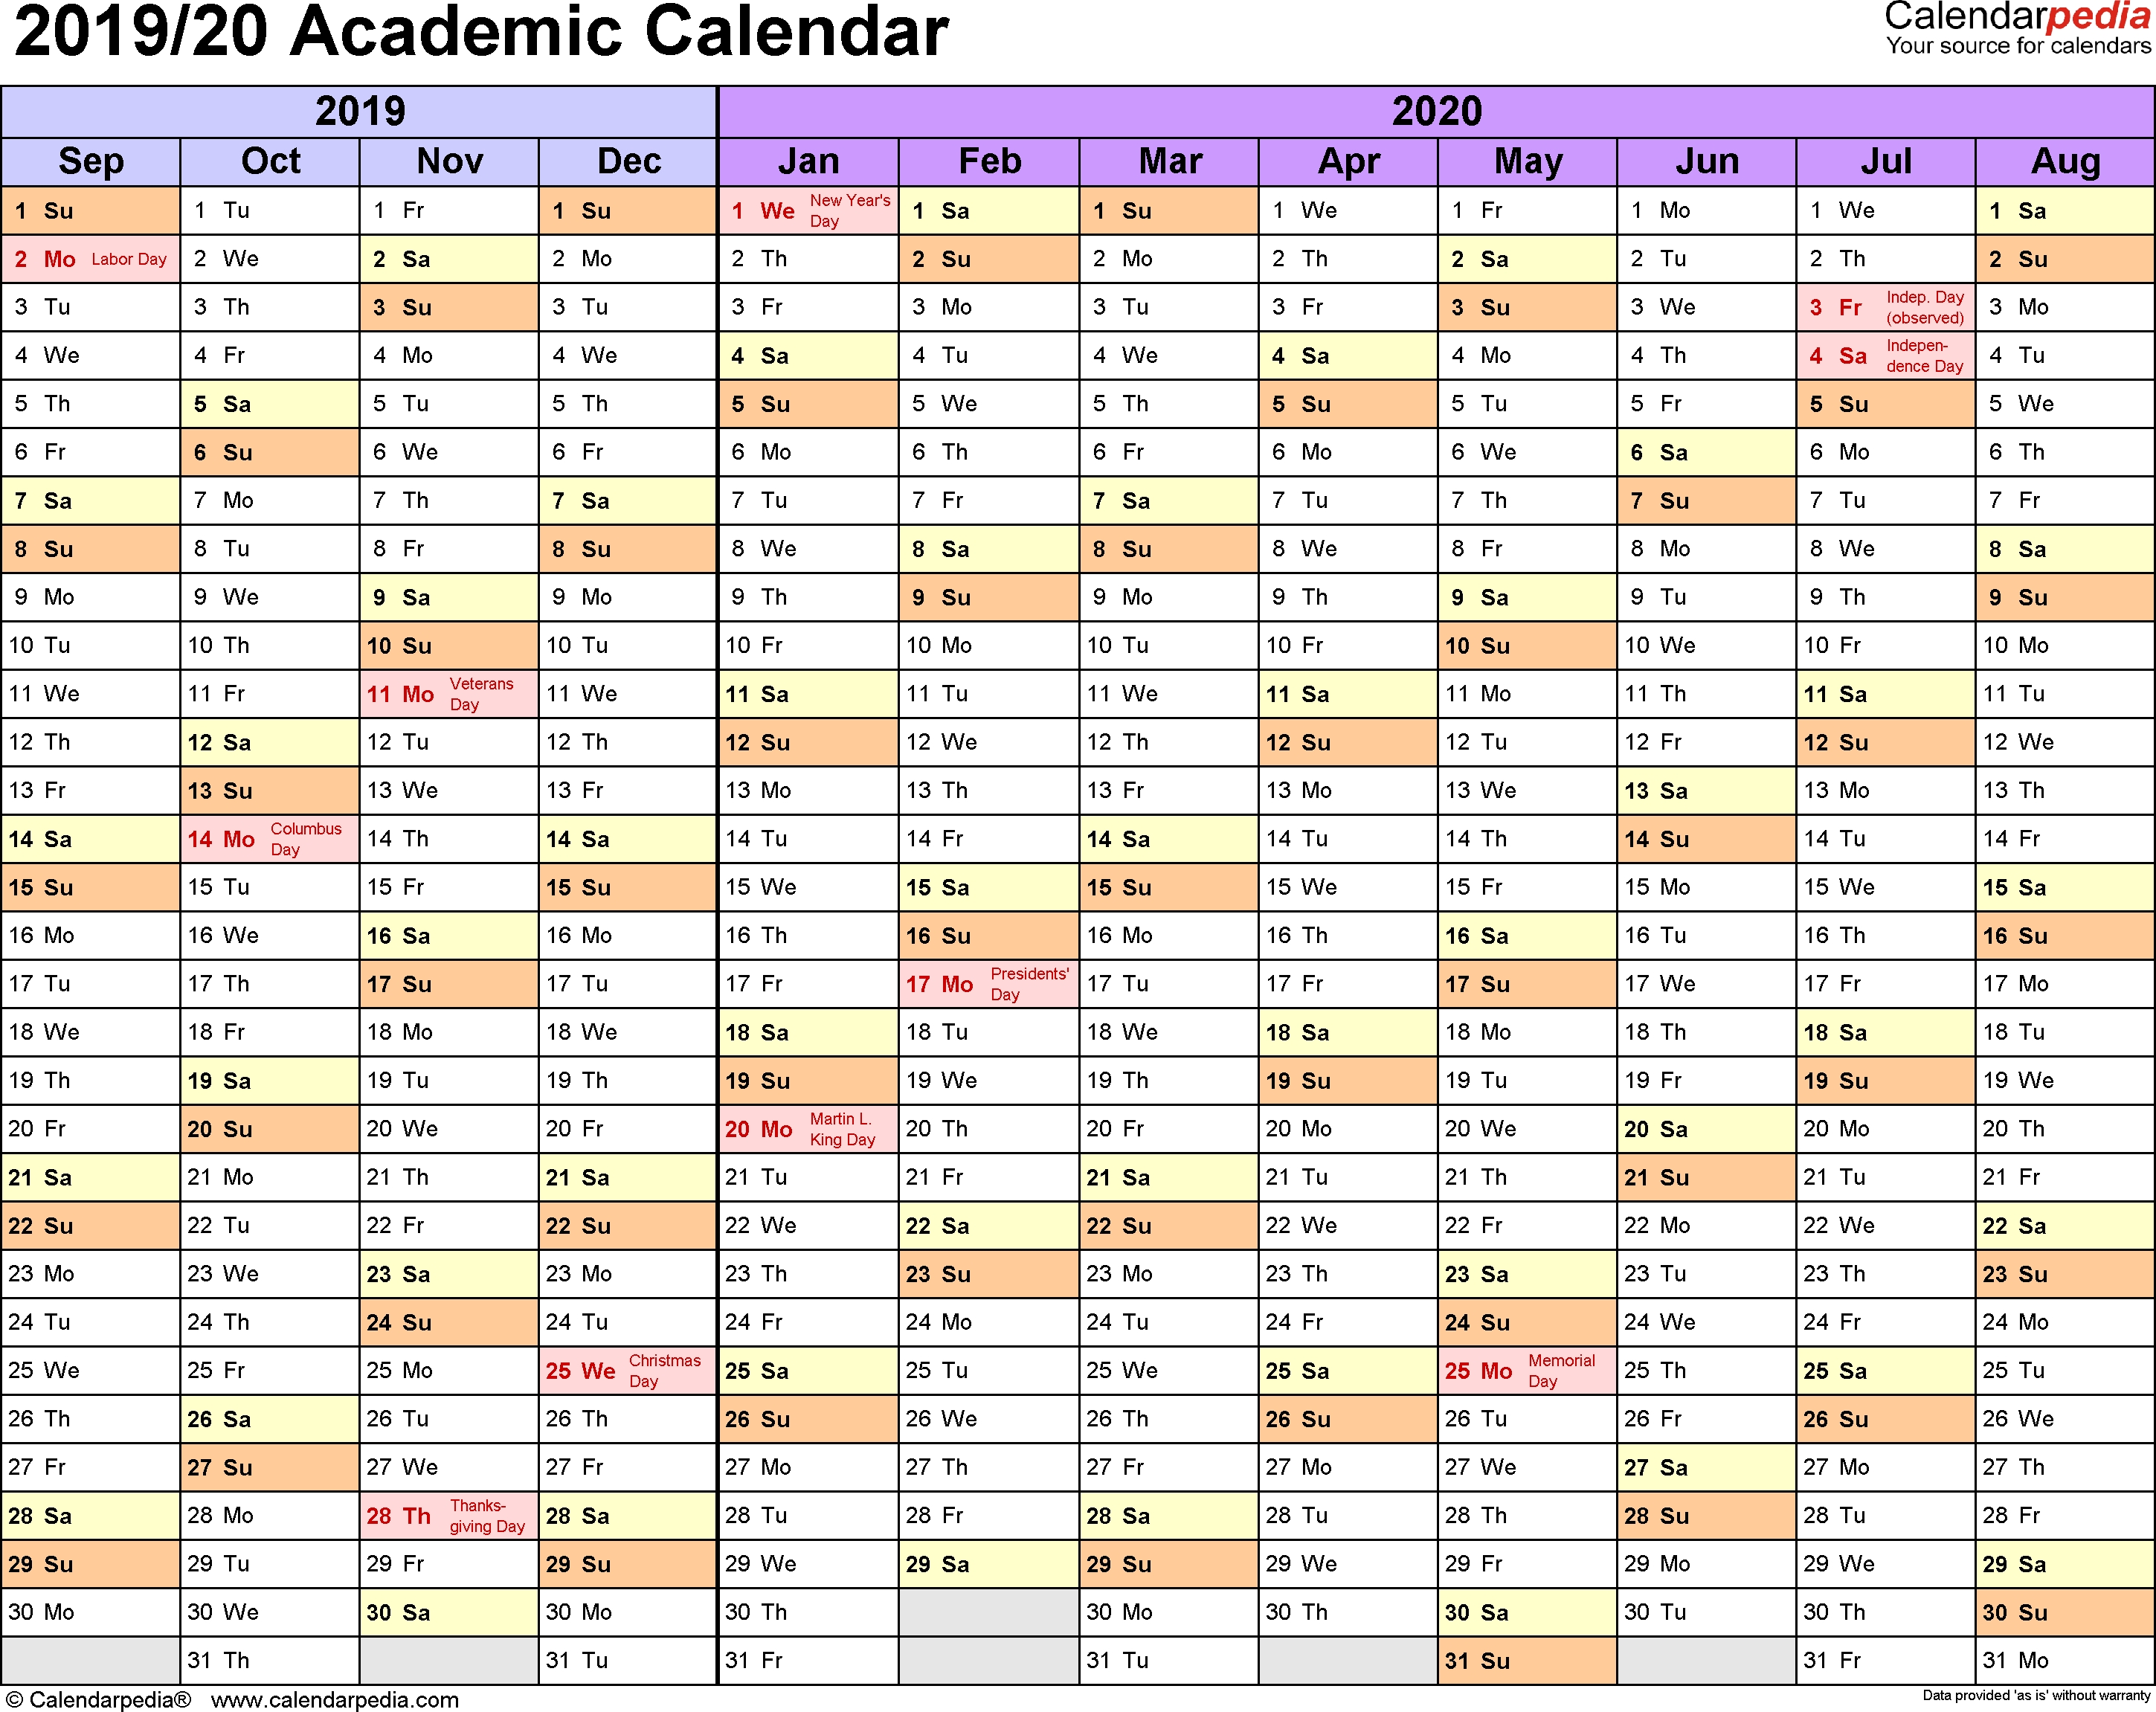 Academic Calendars 2019/2020 - Free Printable Excel Templates with Calendar 2019-2020 Excel